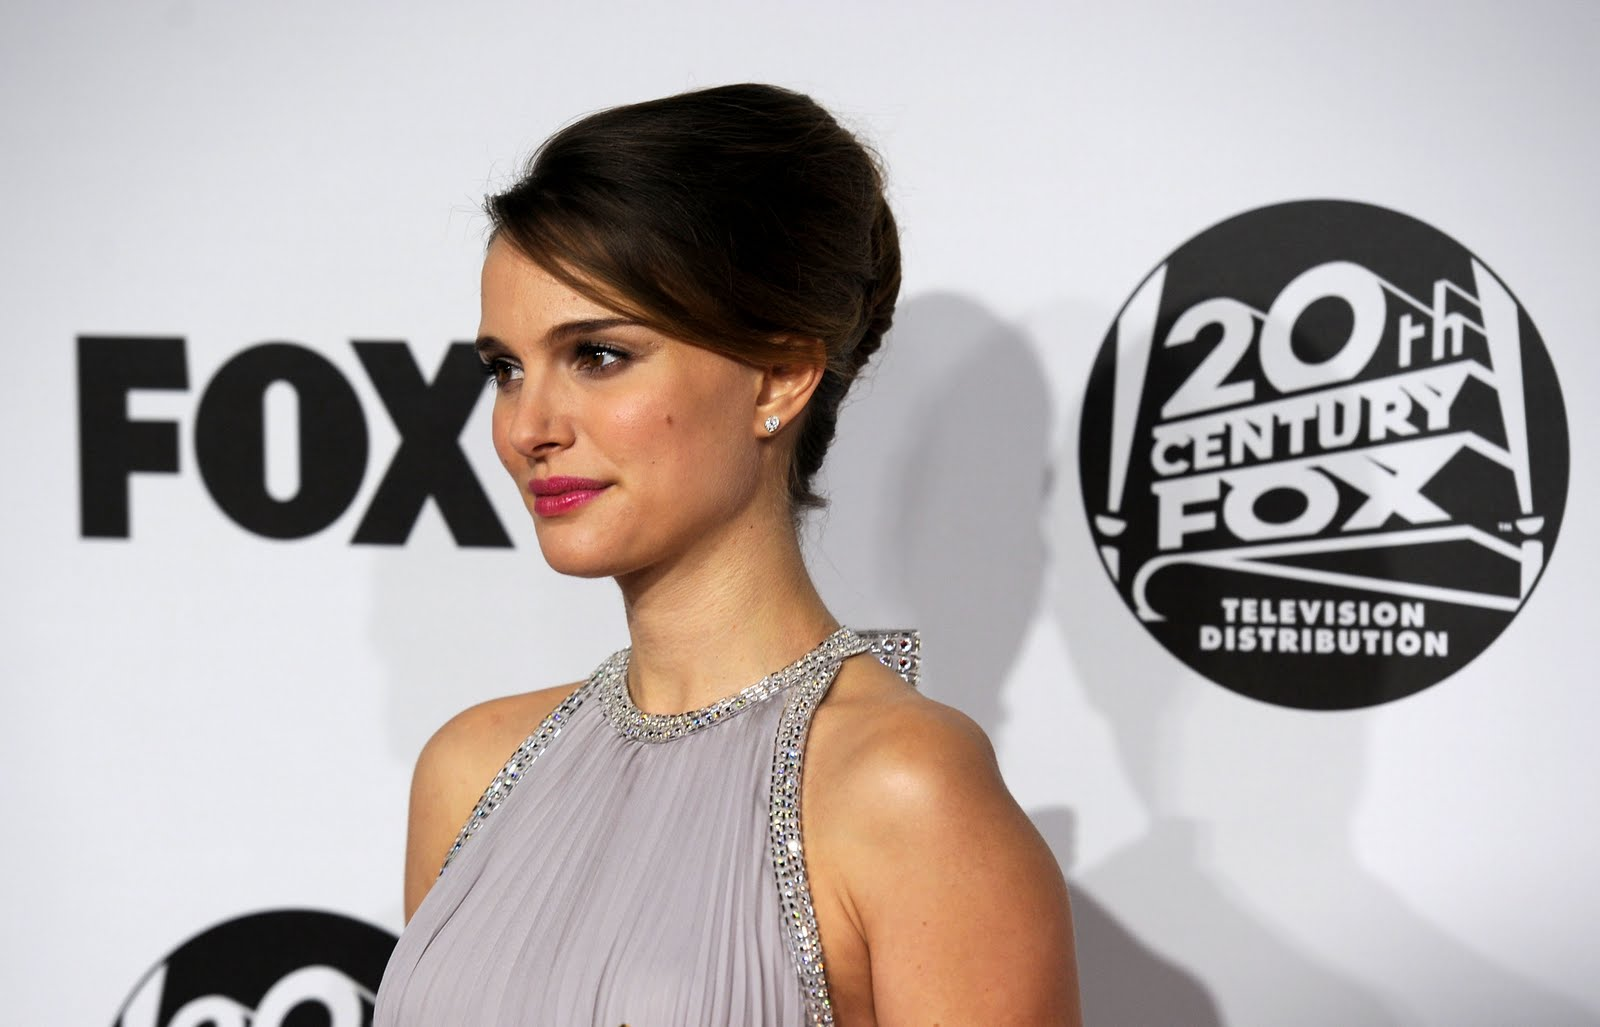 http://1.bp.blogspot.com/-JO9ut7GAG_0/TpwzLJa6pPI/AAAAAAAAHlw/rT3TWjpw574/s1600/Natalie_Portman_-_Fox_Searchlight_2011_Golden_Globe_Awards_Party_1-16-2011_002.jpg